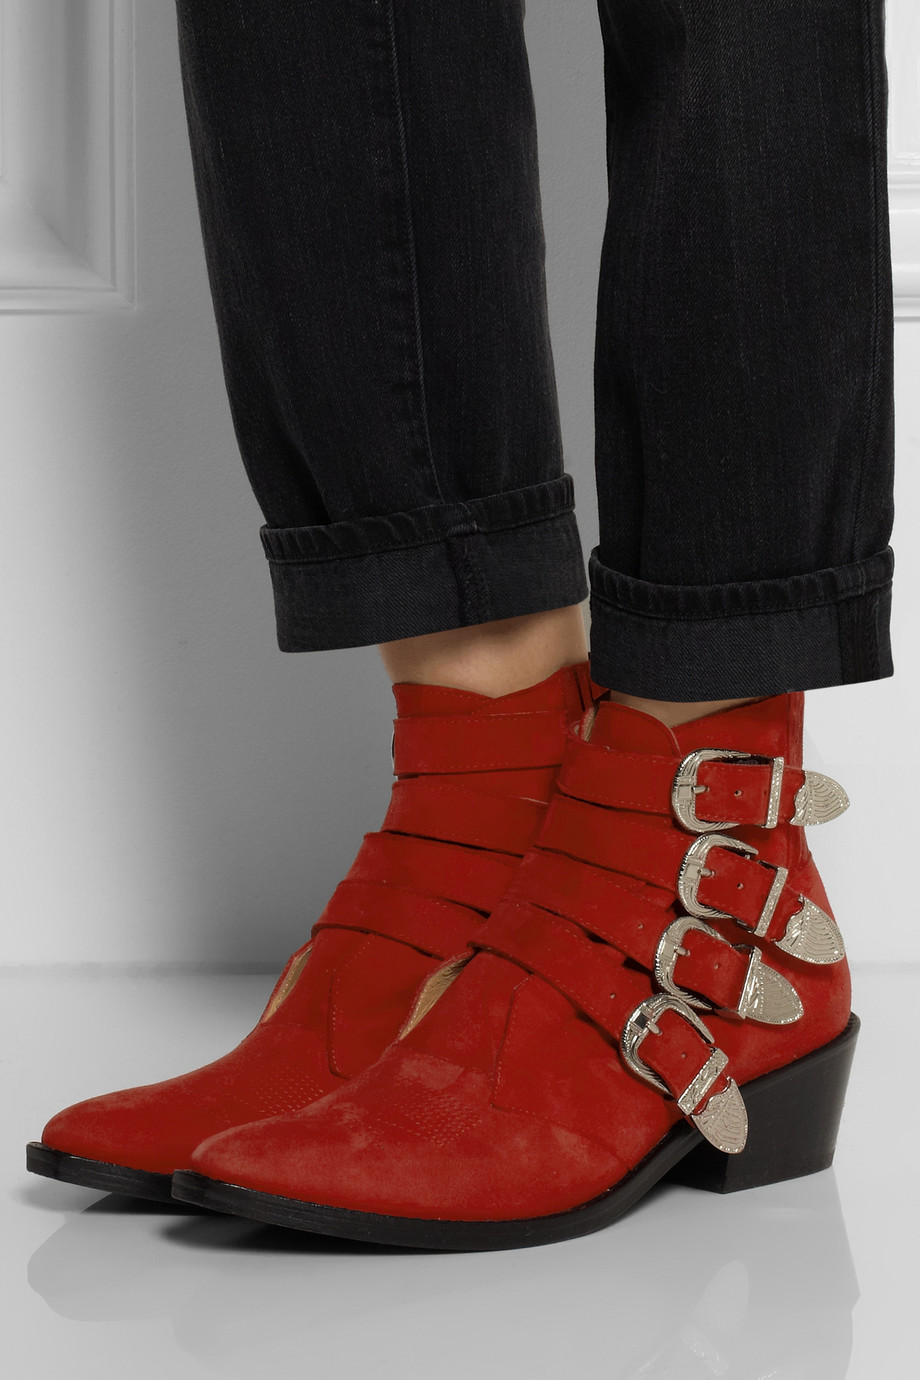 Outlet Locations Cheap Price TOGA PULLA Buckle suede ankle boots Discounts Outlet Store Locations Buy Cheap Low Price Fee Shipping Limited Edition Online YSpZVzhHJF